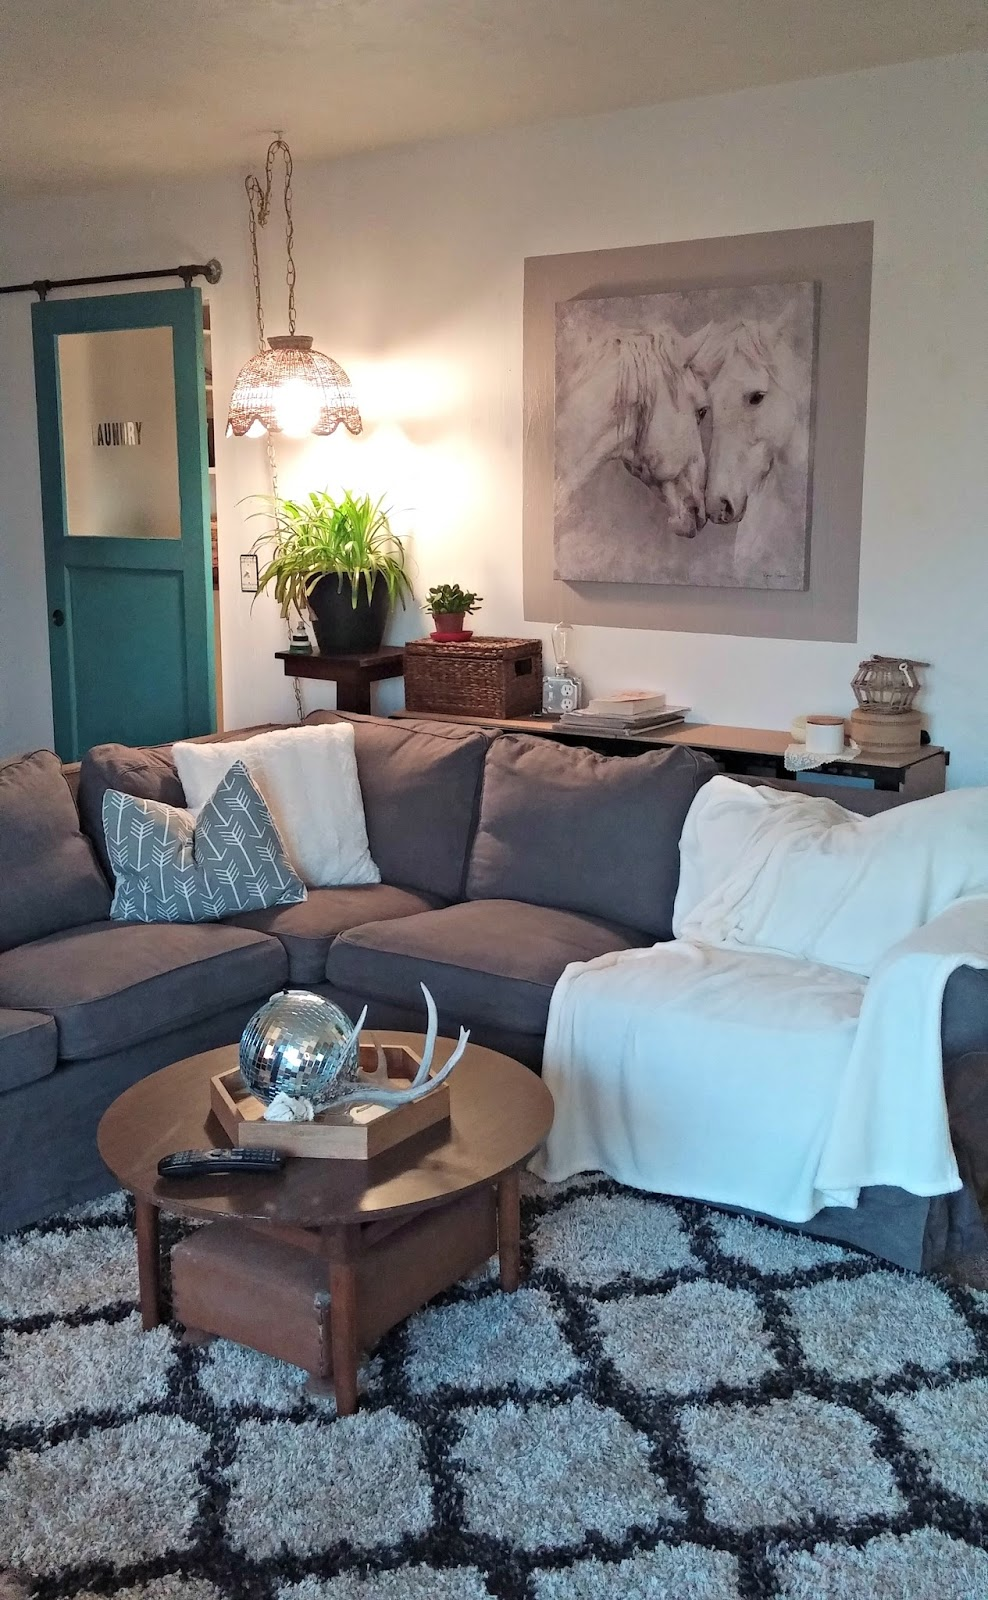 Couch Shops Cozy Minimalist Living Room Reveal - Little Vintage Cottage